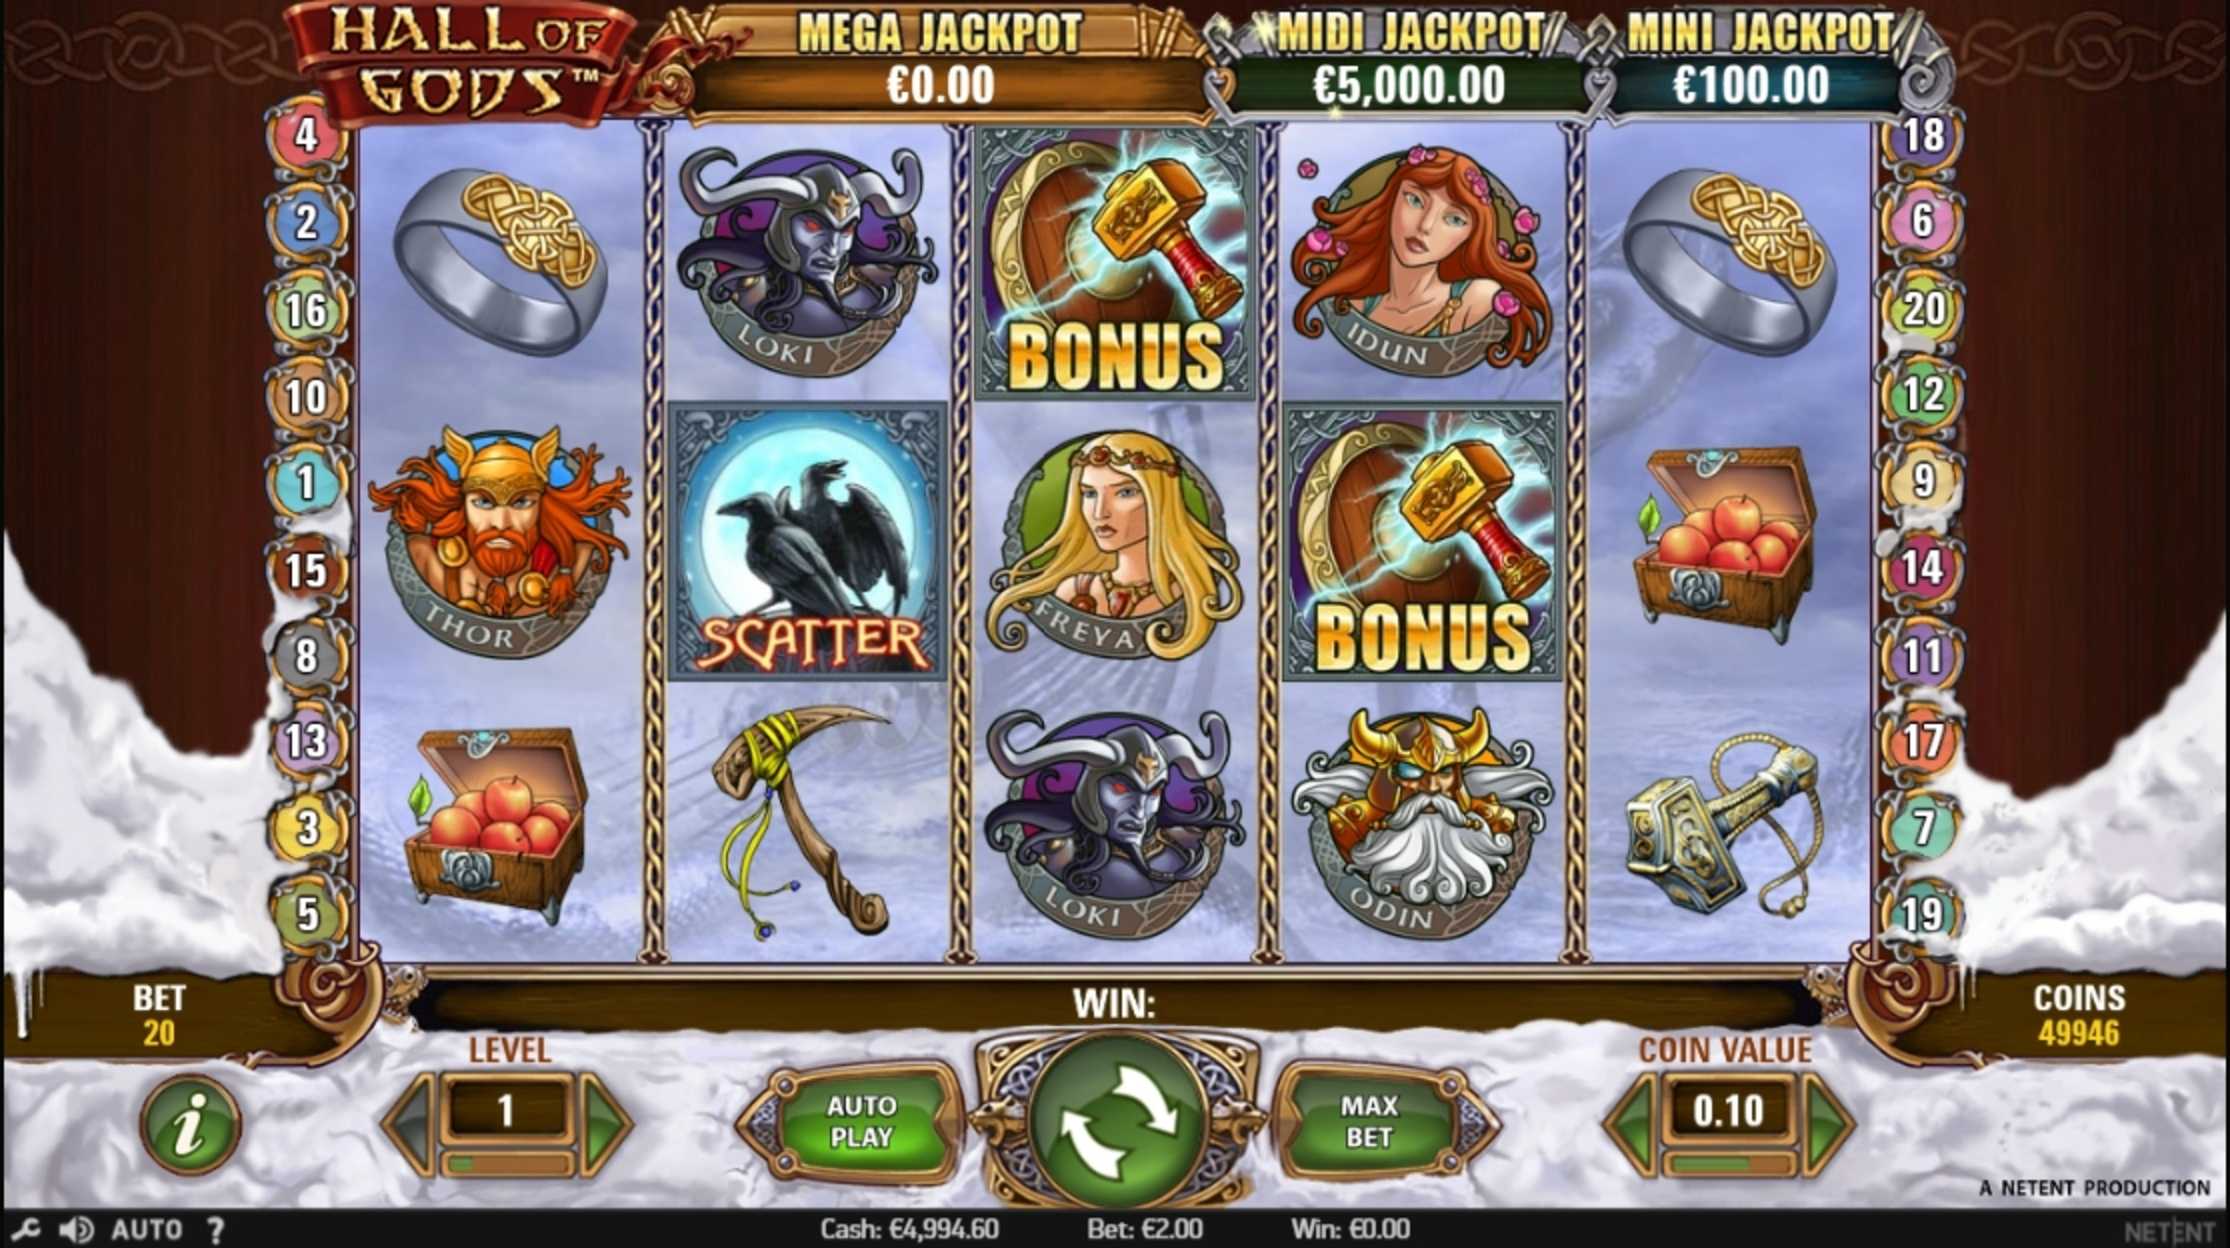 Reels in Hall of Gods Slot Game by NetEnt